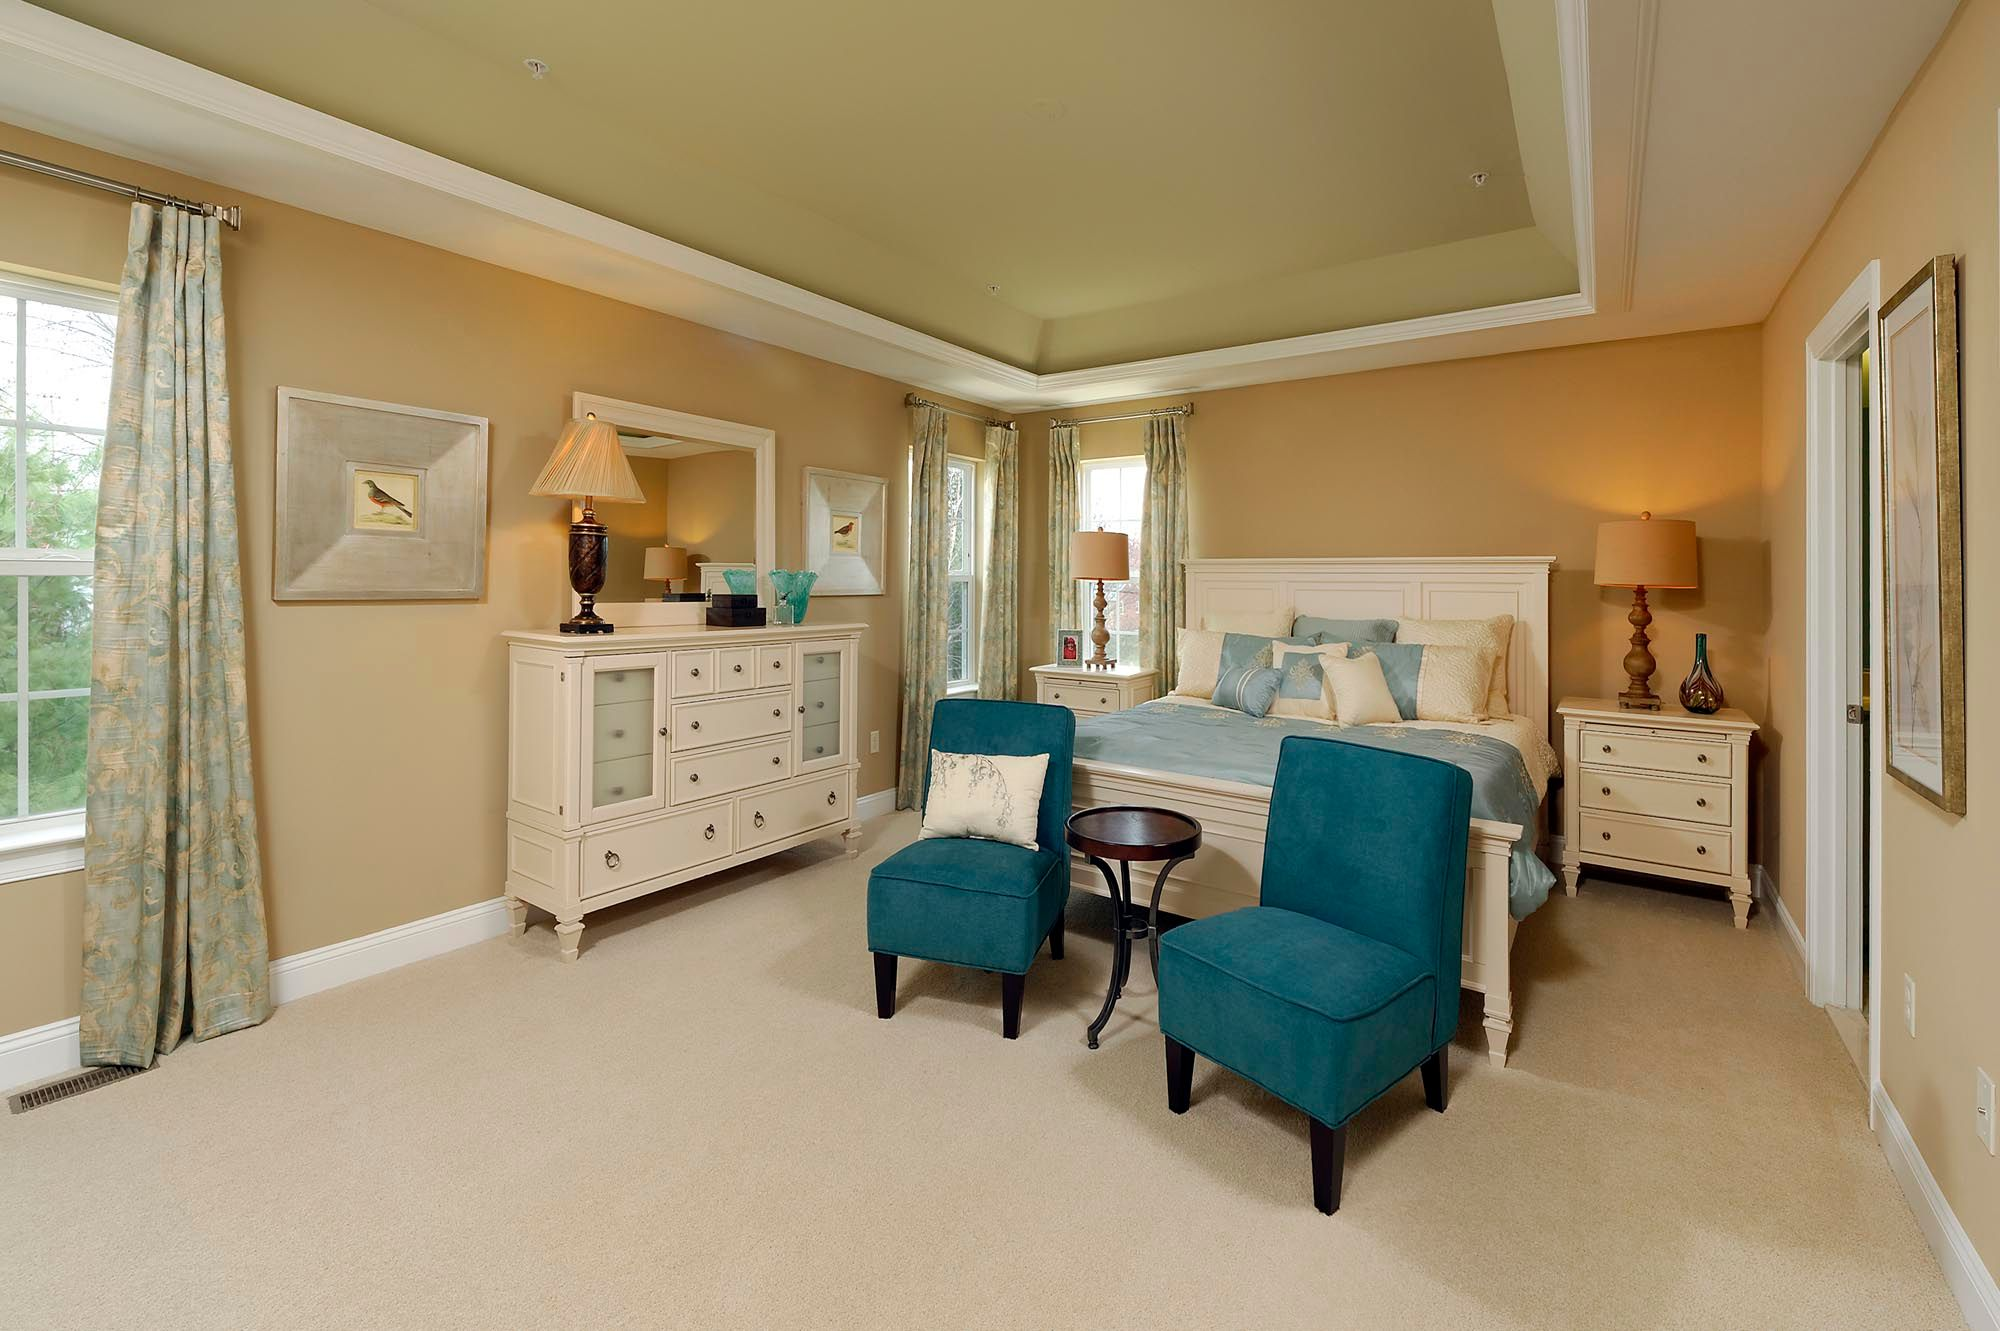 Bedroom featured in the Ellicott II By Williamsburg Homes LLC in Baltimore, MD